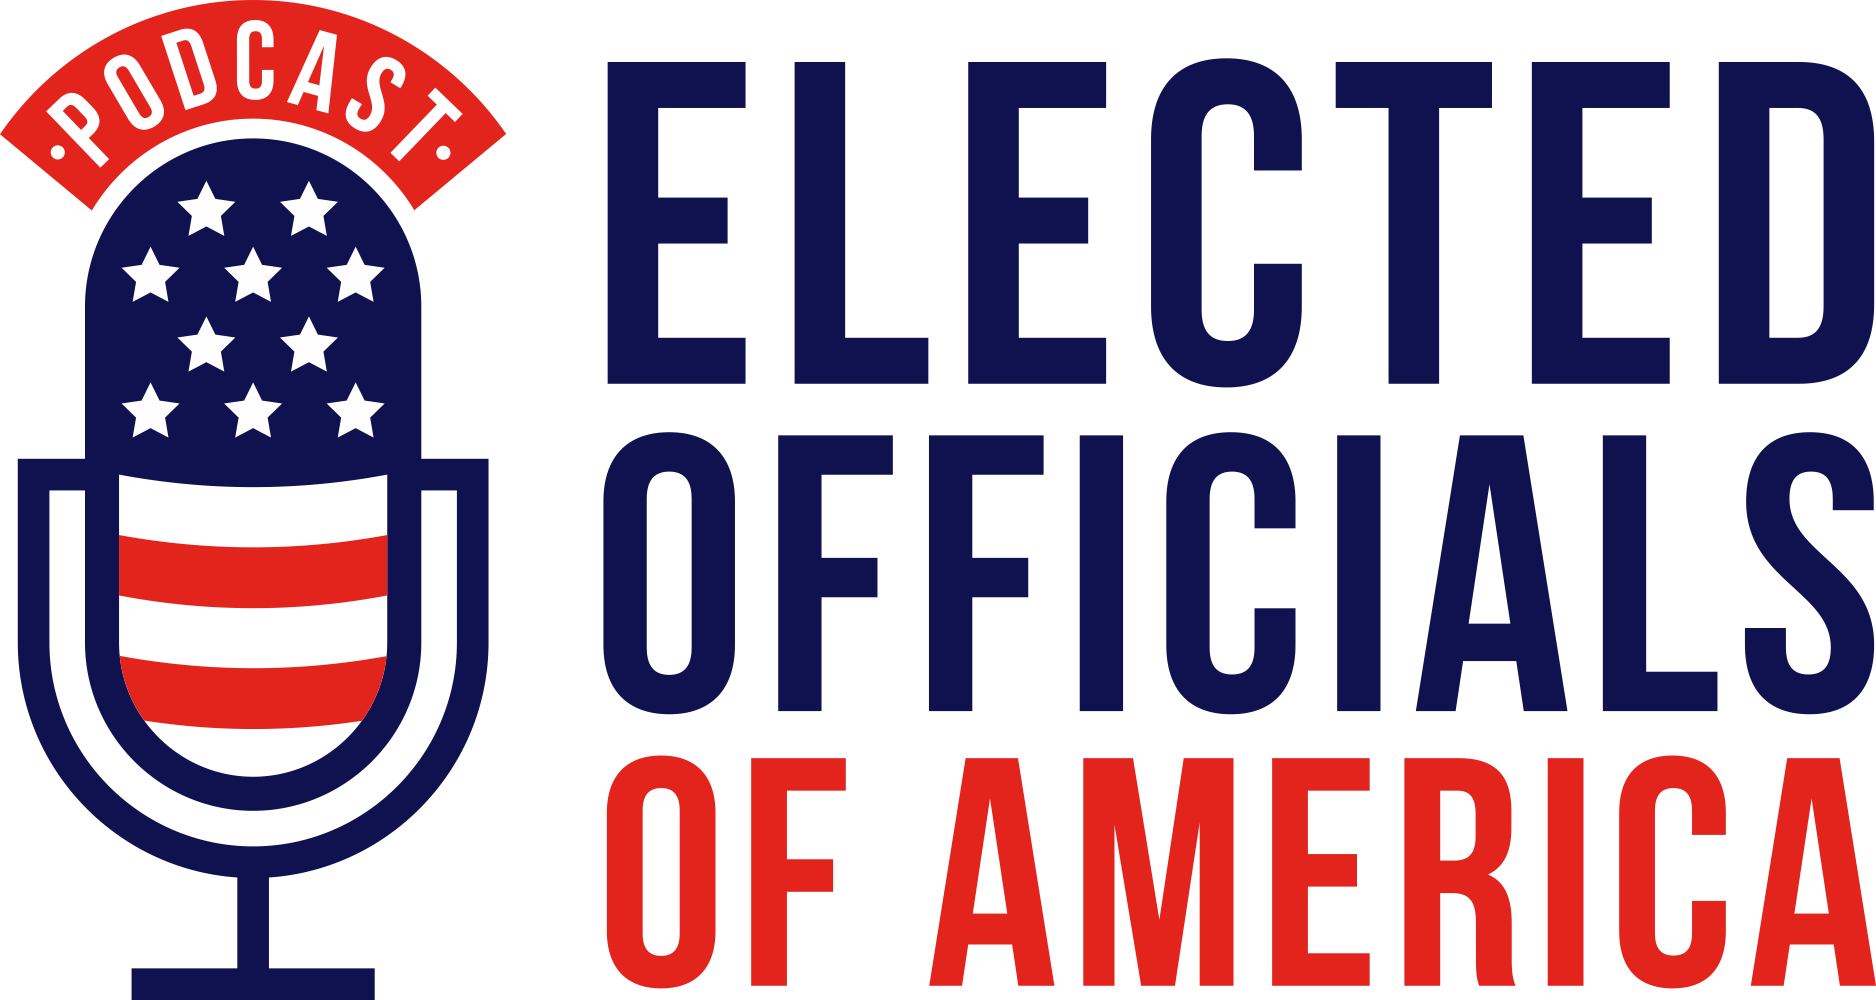 electedofficialsofamerica on bailey task chair